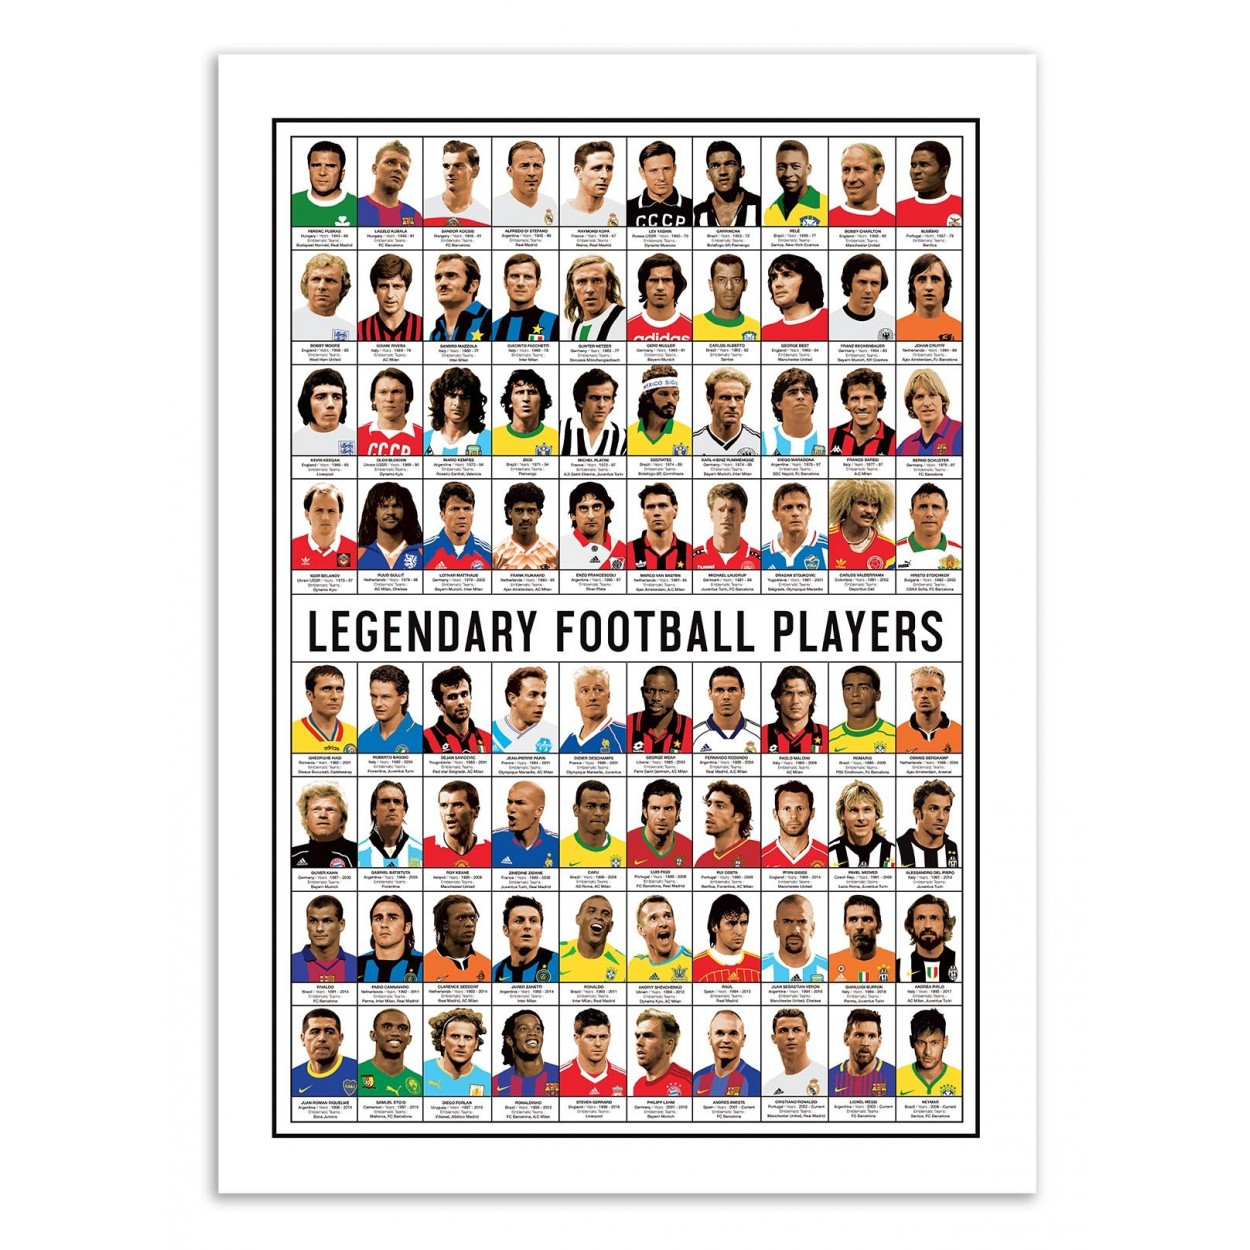 photo art poster frame and illustration of football stars. Black Bedroom Furniture Sets. Home Design Ideas